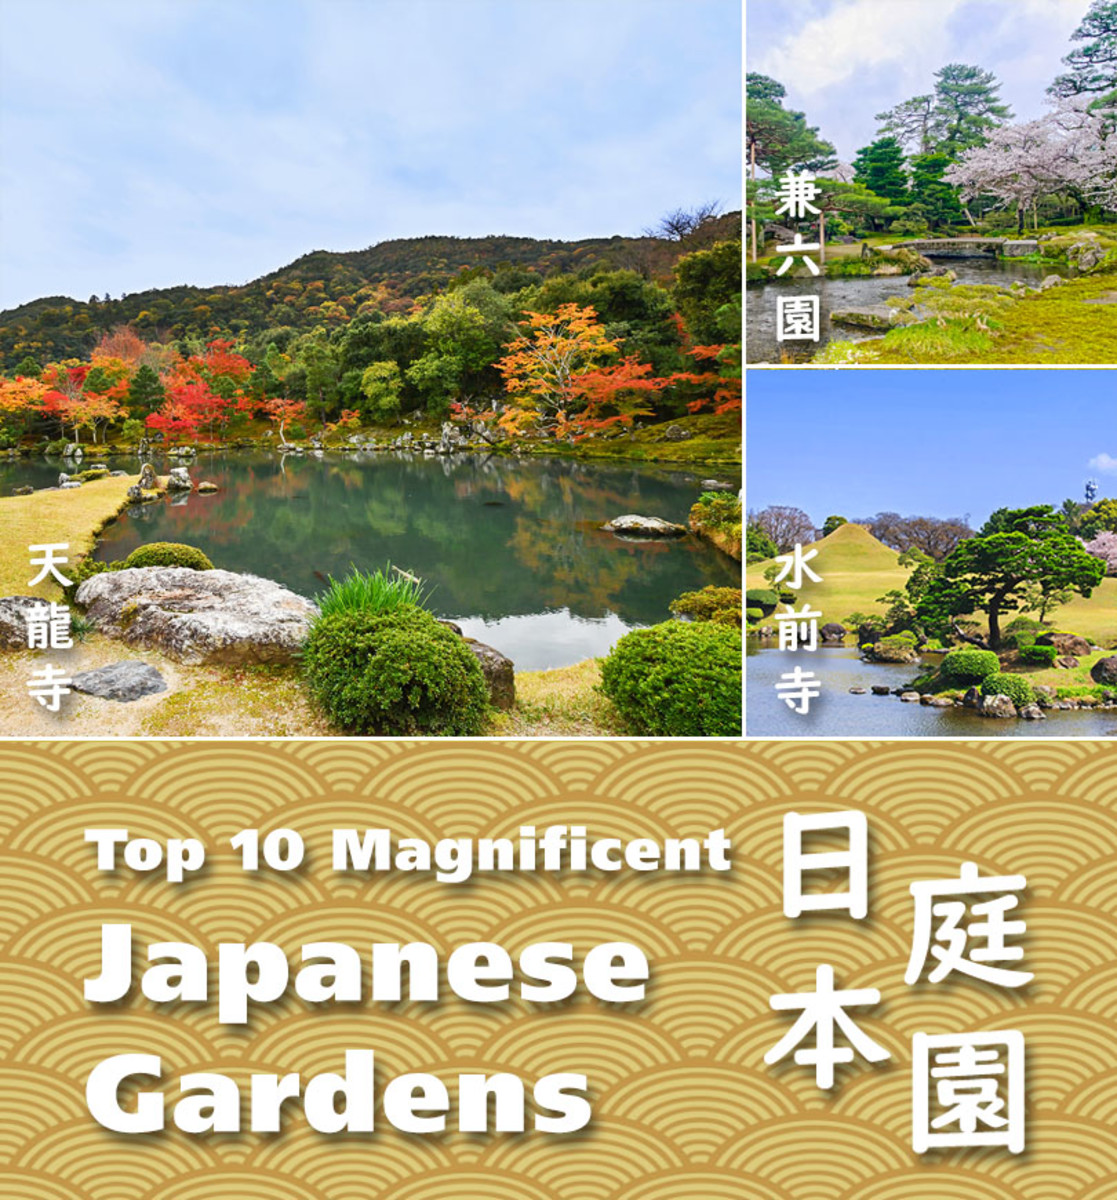 The 10 Most Beautiful Japanese Gardens In Japan Wanderwisdom Travel